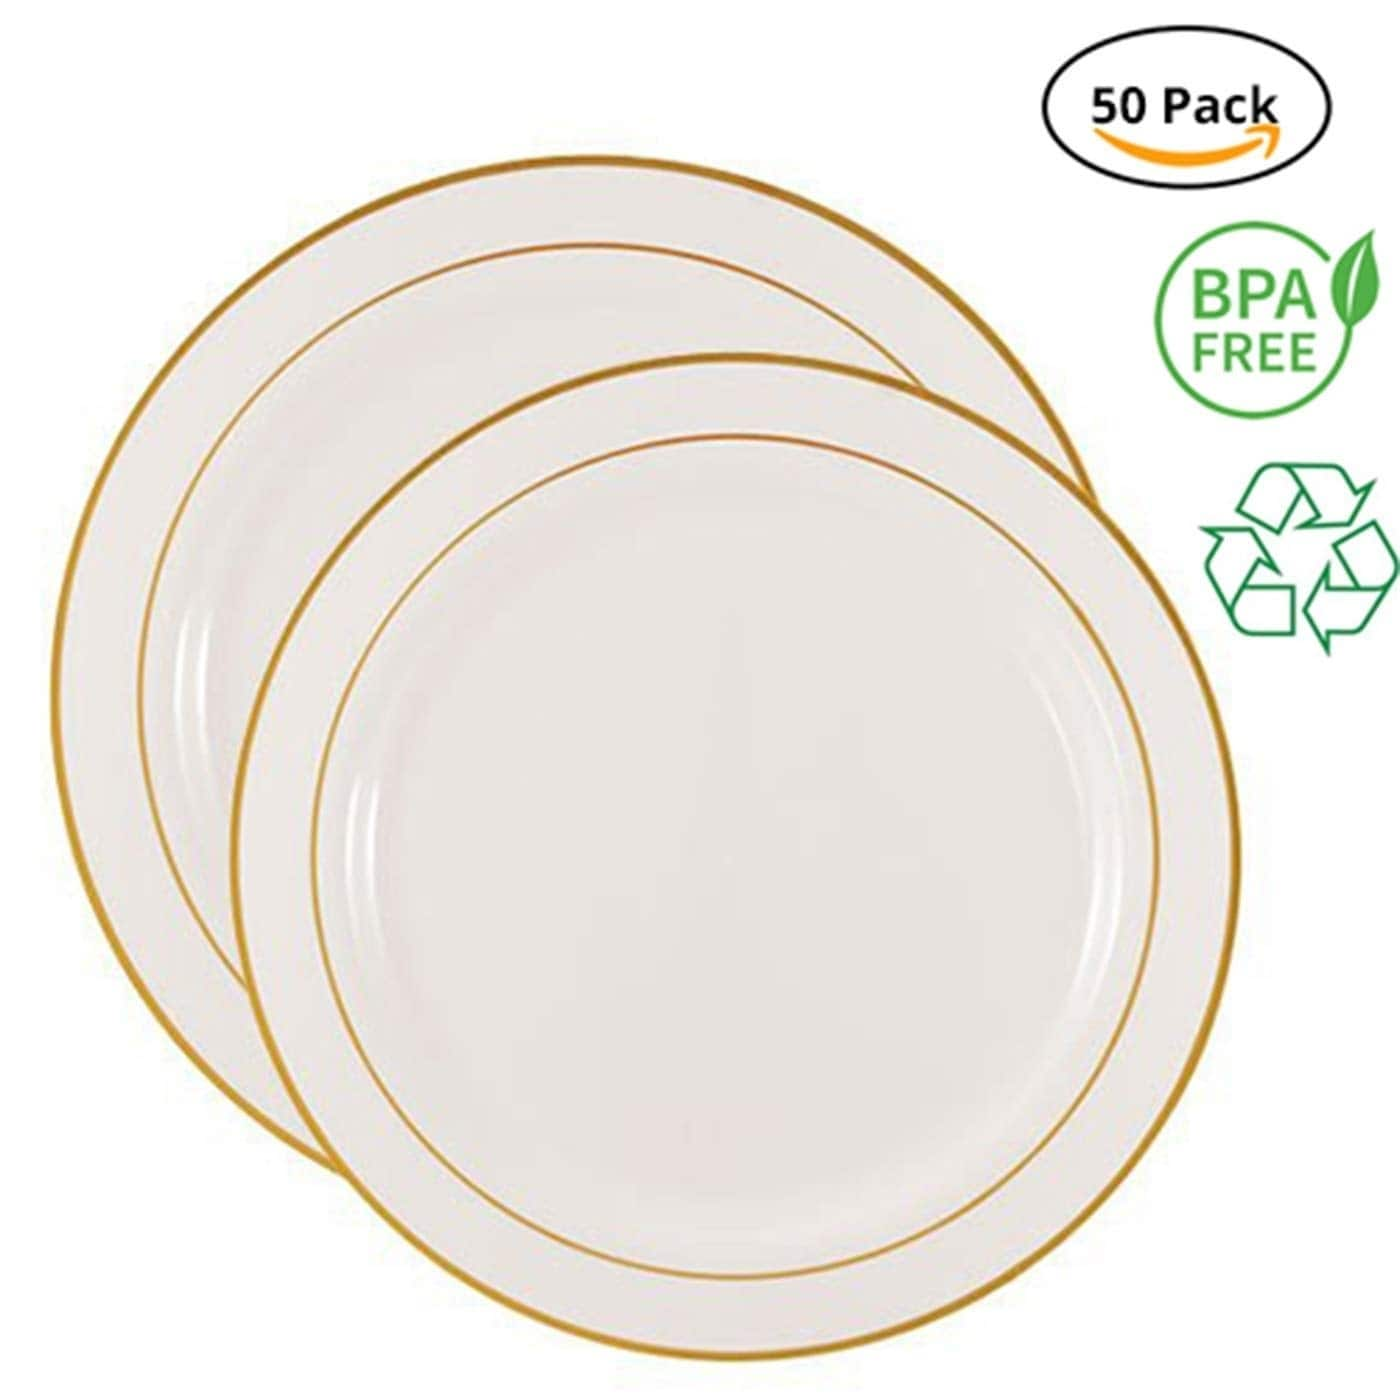 Shop party joy 50 piece plastic dinnerware set free shipping on orders over 45 overstock 27281438